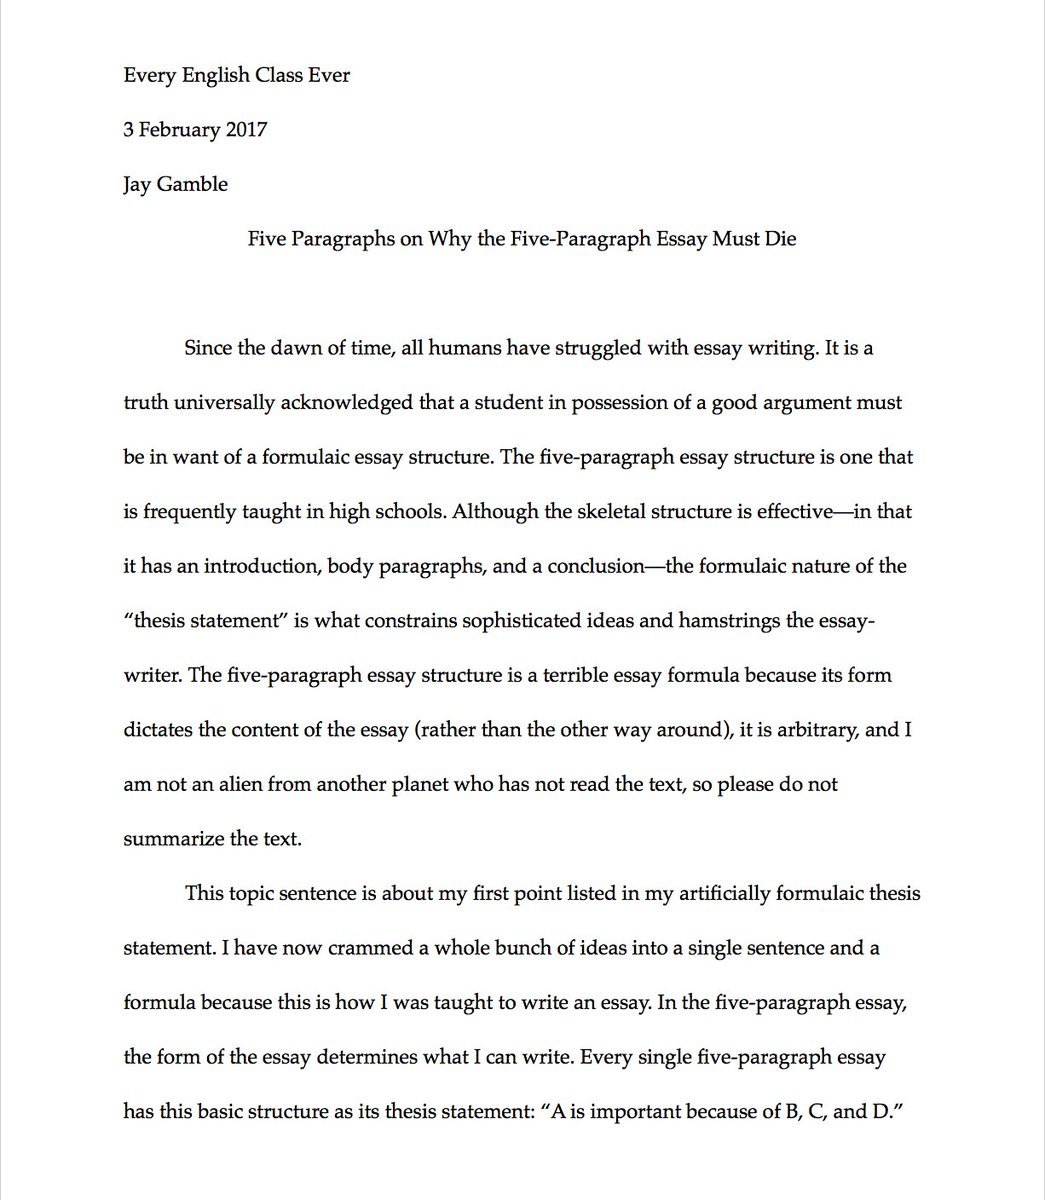 jay guevara on why the five paragraph essay must die in jay guevara on why the five paragraph essay must die in five paragraphs thanks to likelyjanlukas for the idea t co svhn2ho8zl